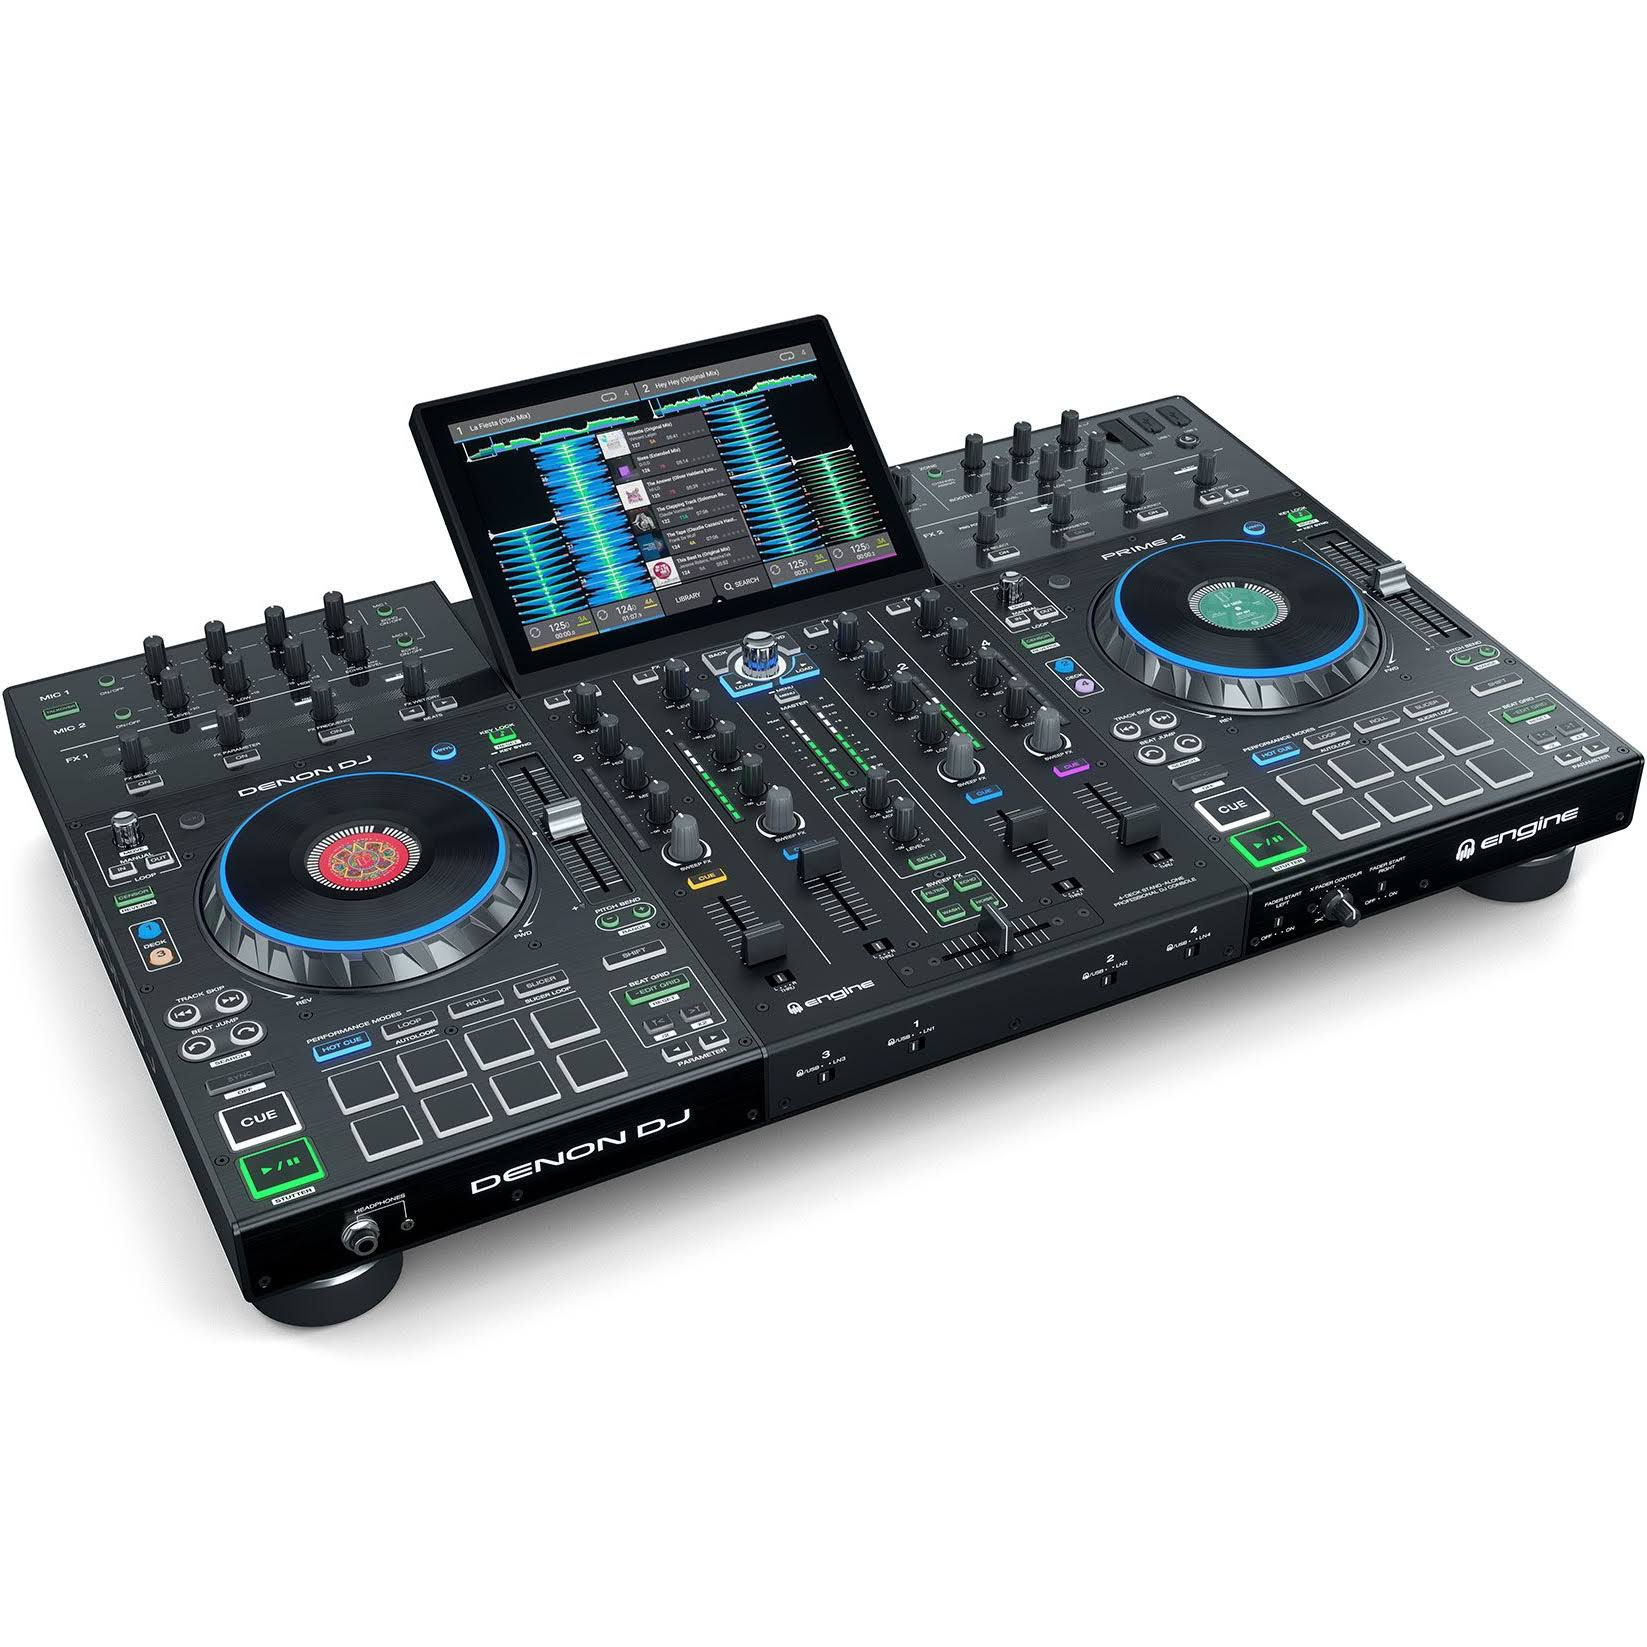 Denon DJ Prime 4 4-Deck Standalone DJ System with 10-inch Touchscreen